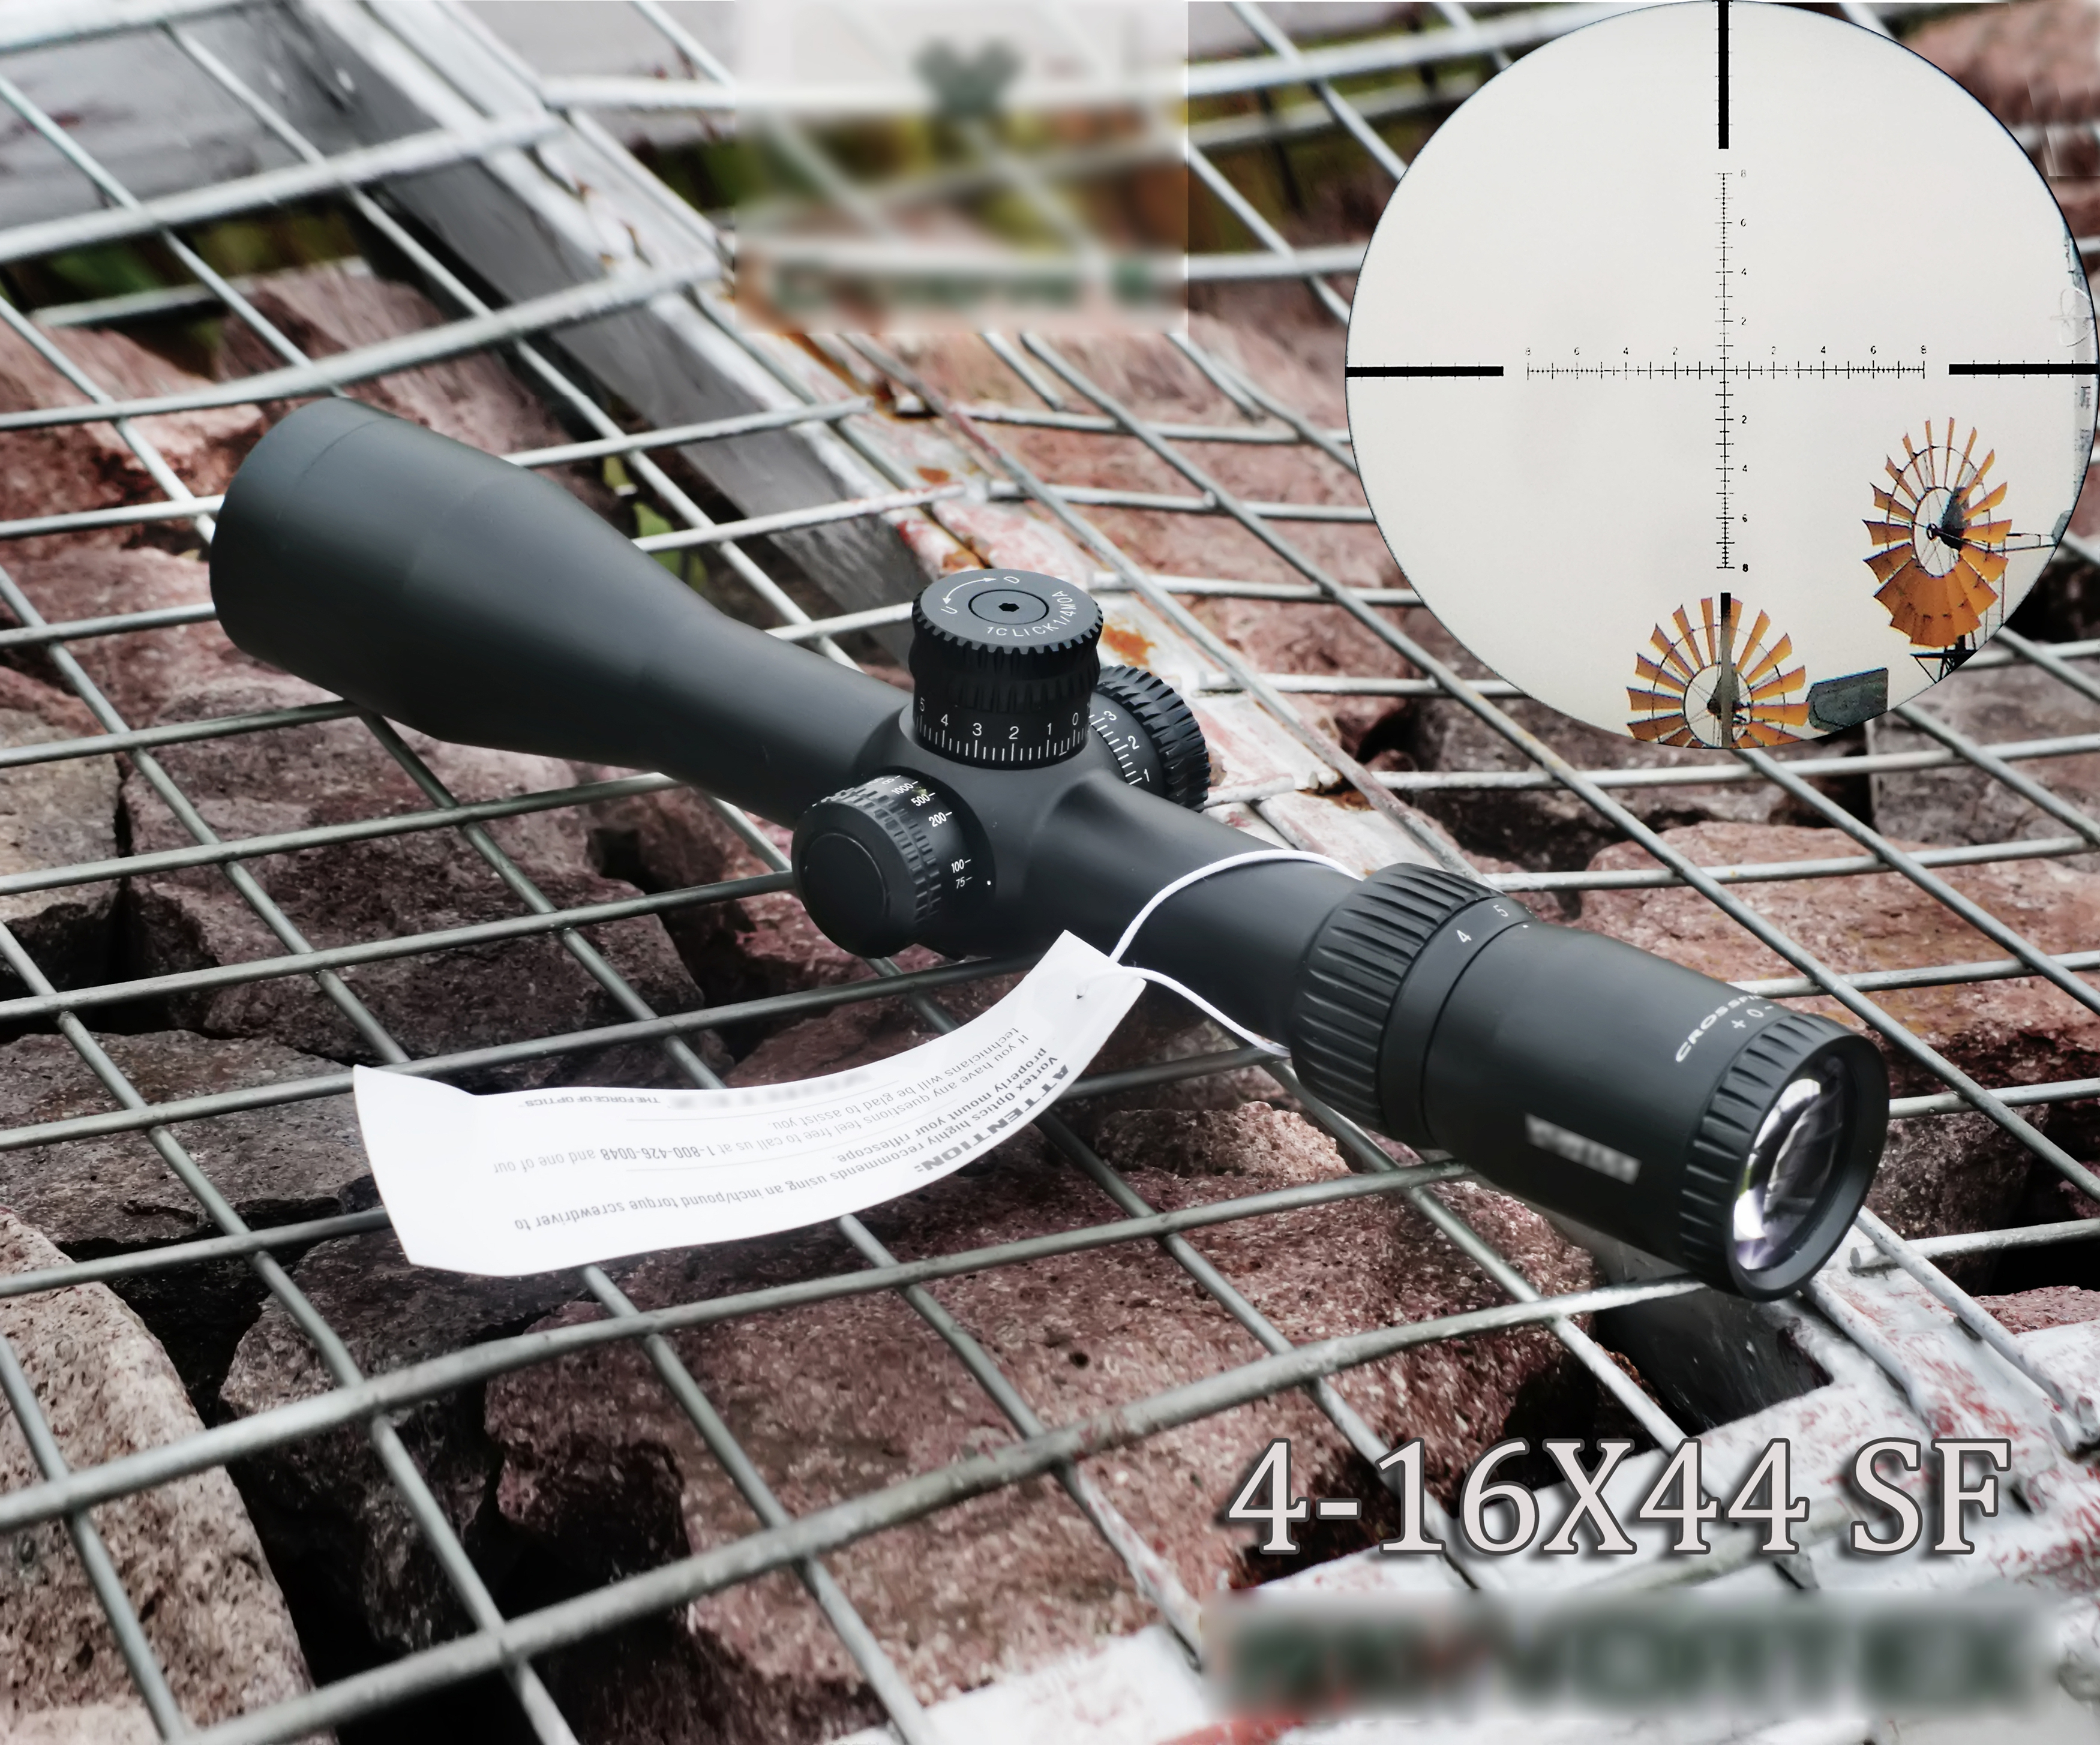 VOTEXe 4-16X44 SF  Compact Riflescope Hunting Optical Sight Sniper Tactical Airgun Rifle Scope Fit .308win